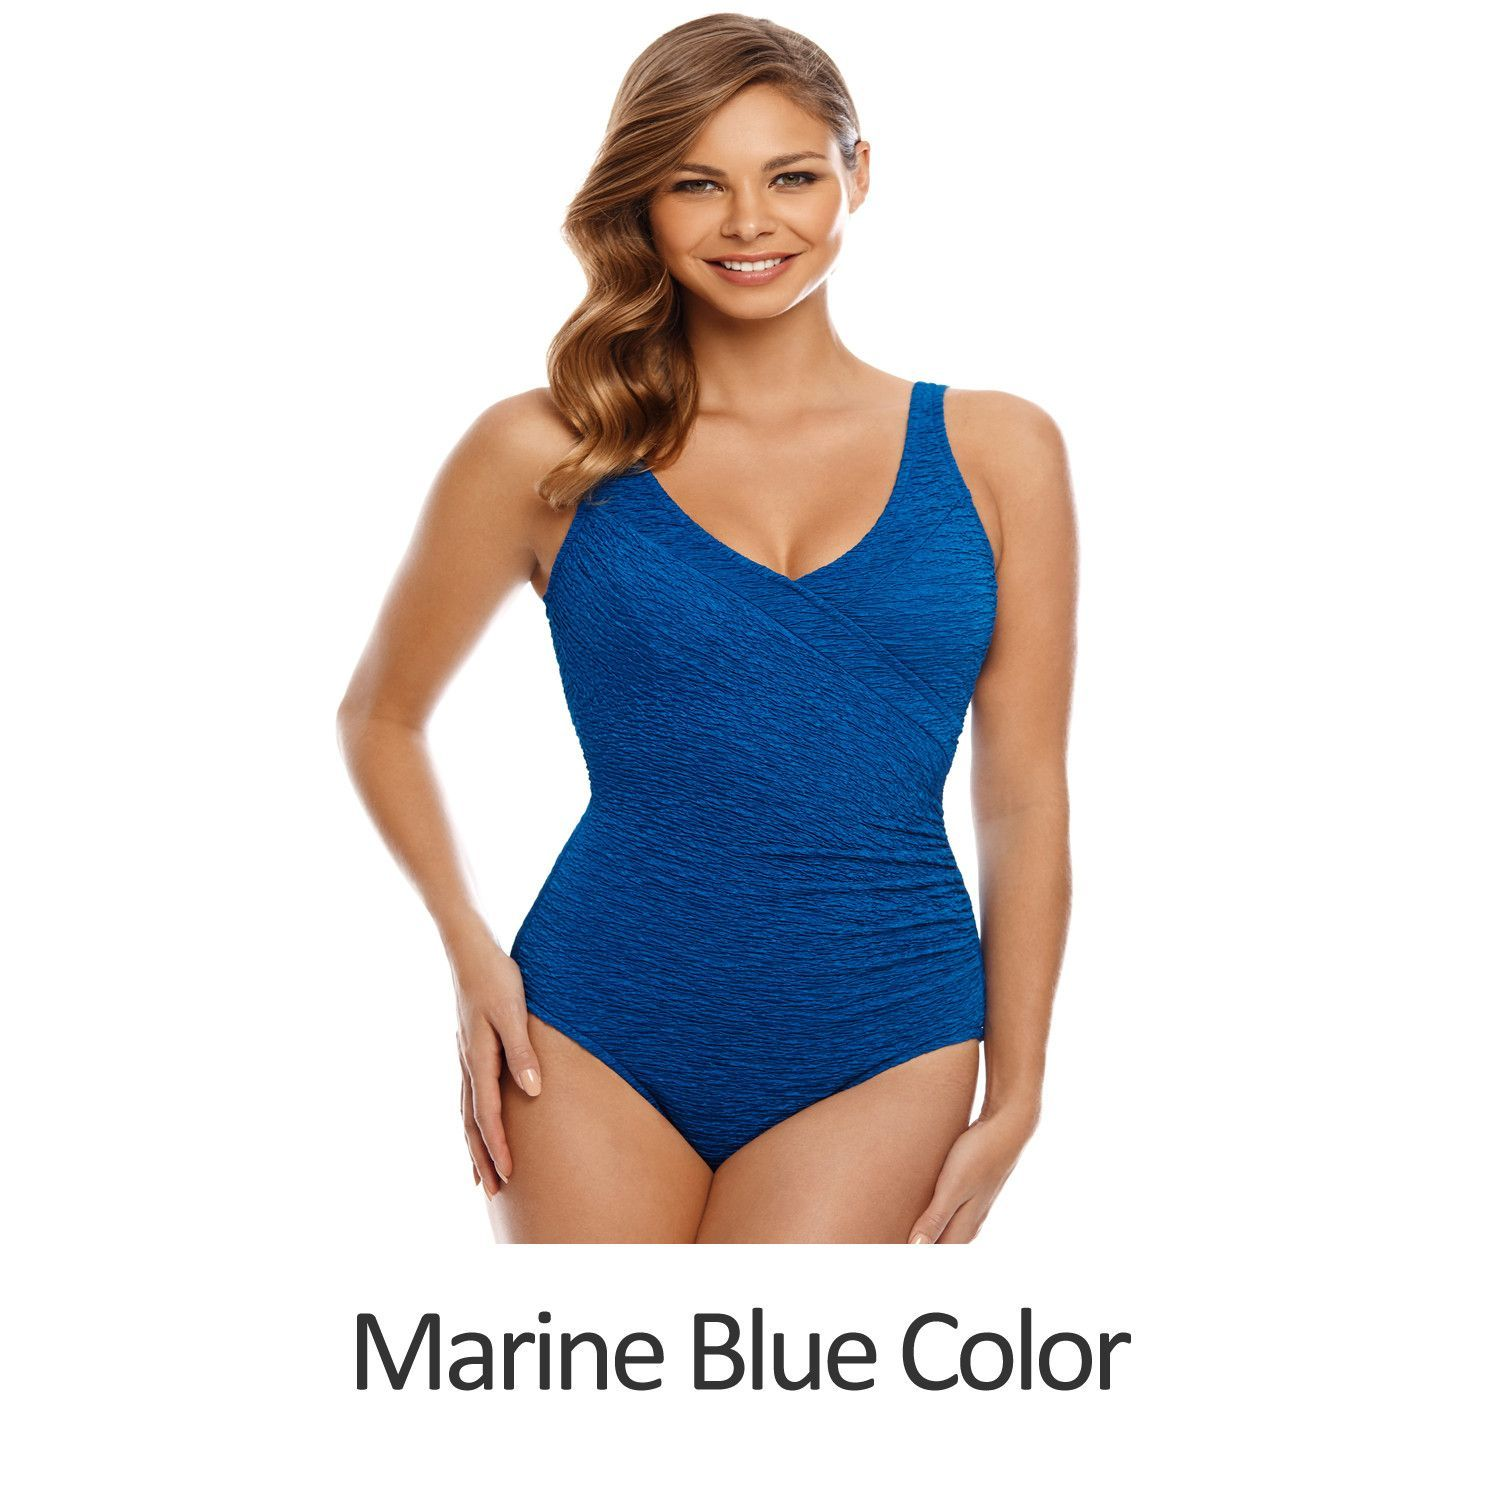 cf364423b5c39 One Piece Chlorine Active Back, D-Cup+, Krinkle Cut Polyester Resistant  Plus Size Swimsuit by Penbrooke at Swimsuits Just For Us | Curvy, Full  Figured ...